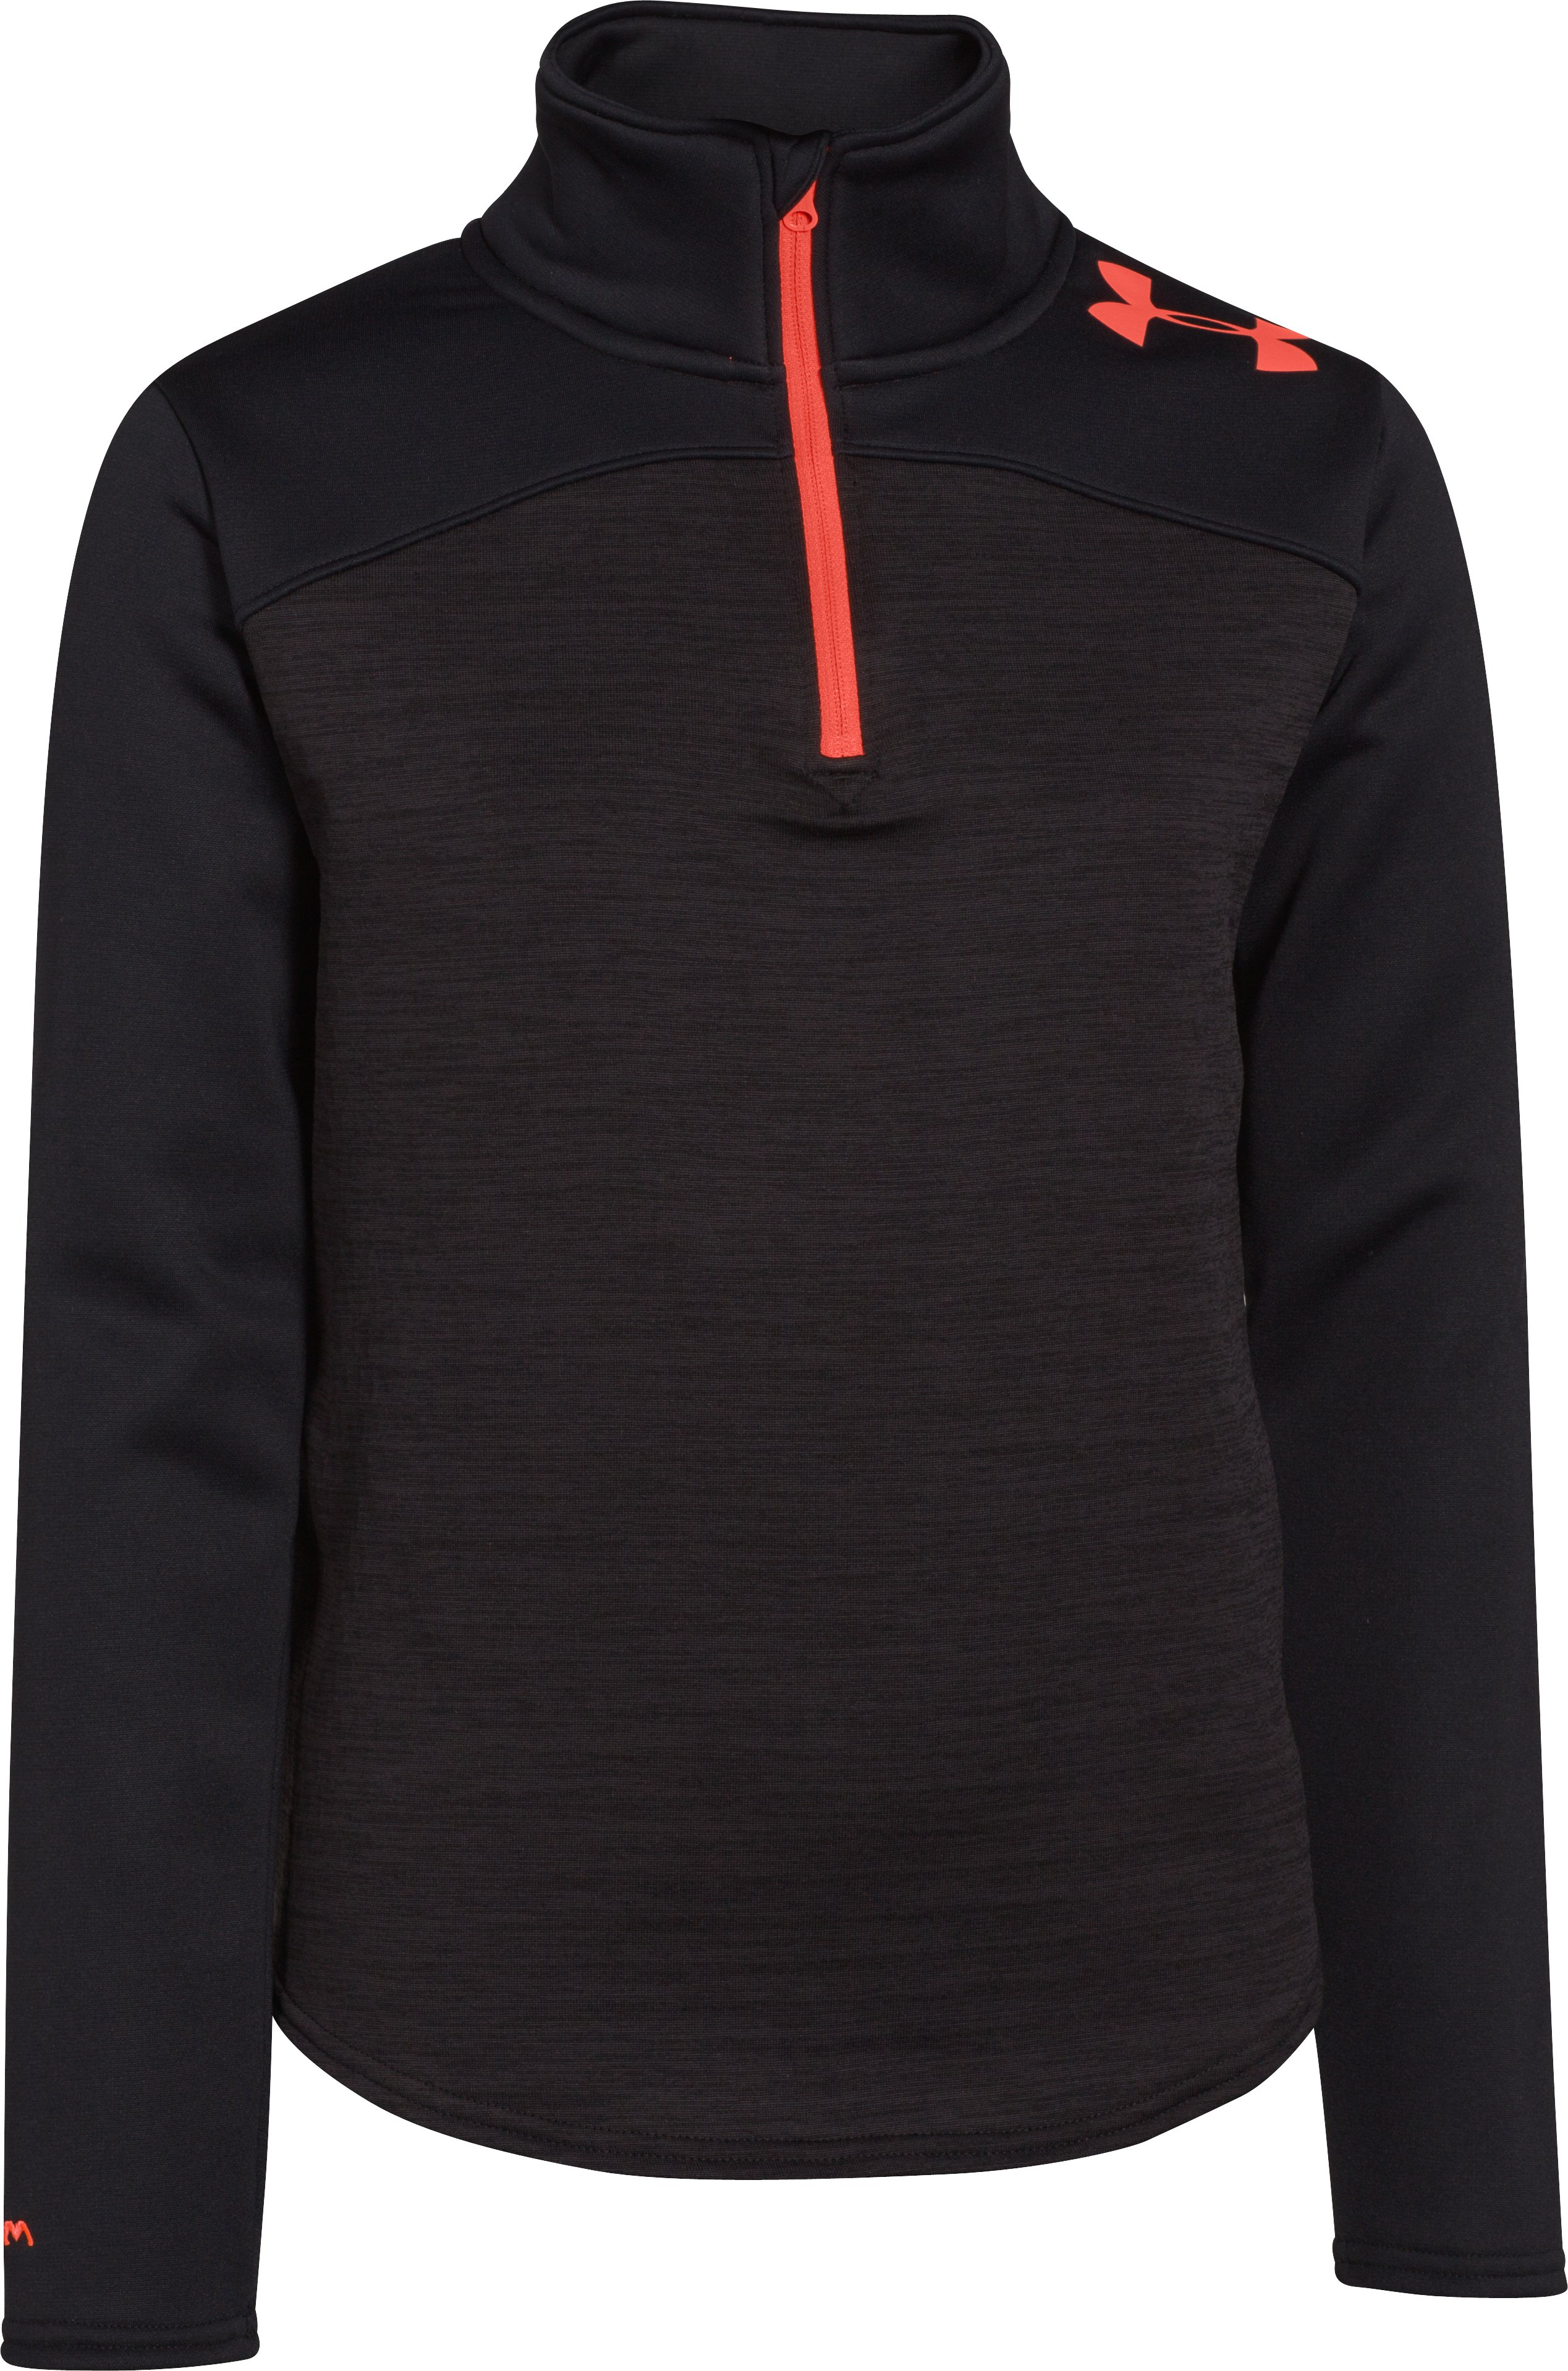 Girls' UA Gamut 1/4 Zip, Asphalt Heather, undefined